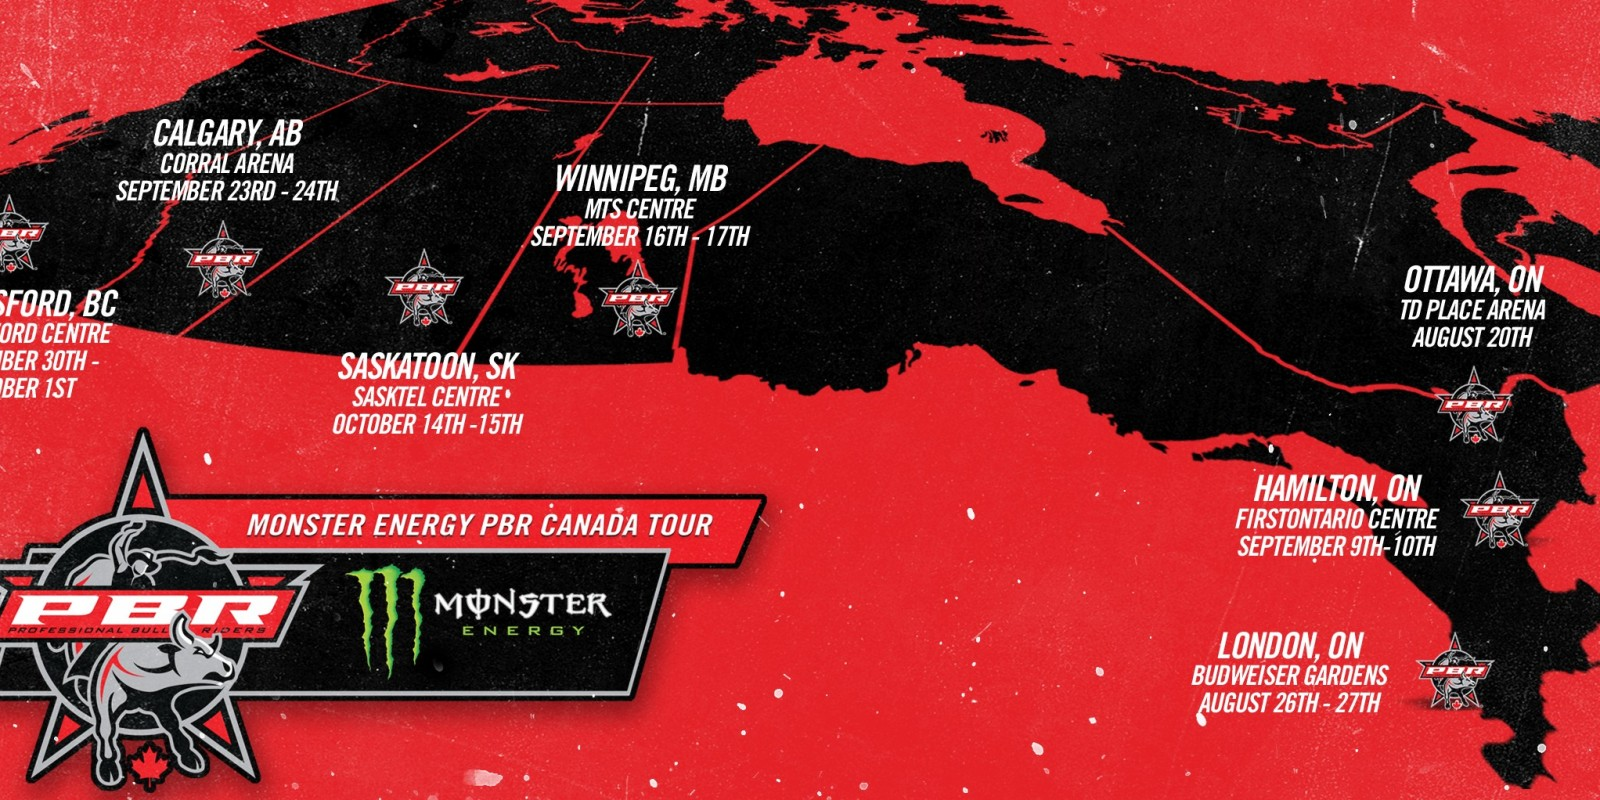 Digital Assets for the Monster Energy PBR Canada Tour 2016 event page on the website.